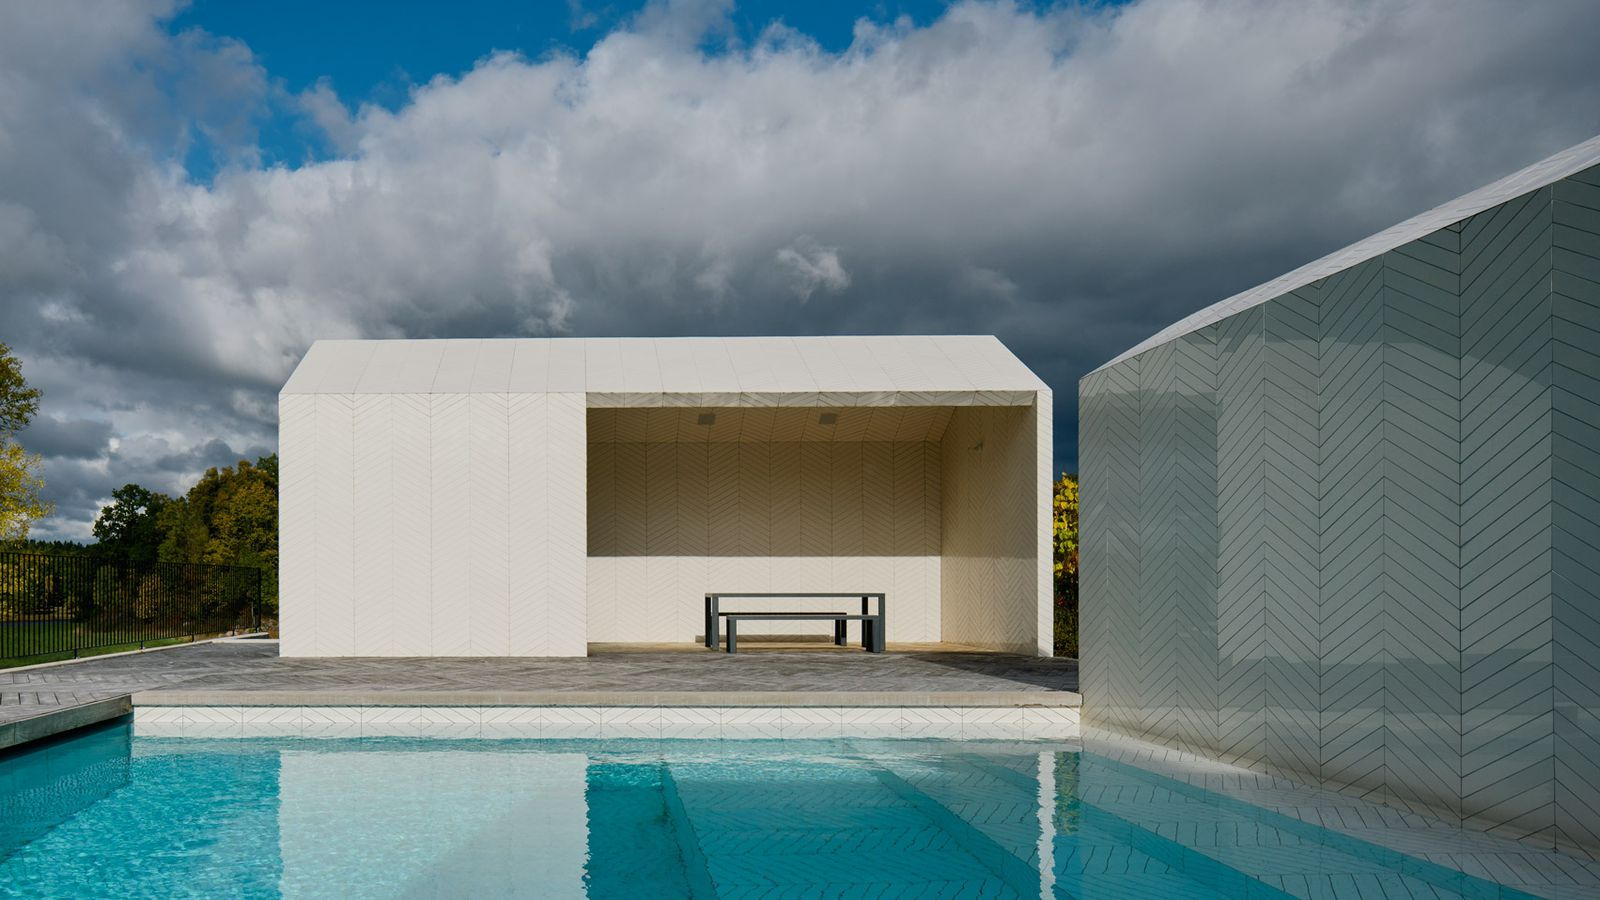 Striking swimming pool complex is clad entirely in a white for Pool design architecture